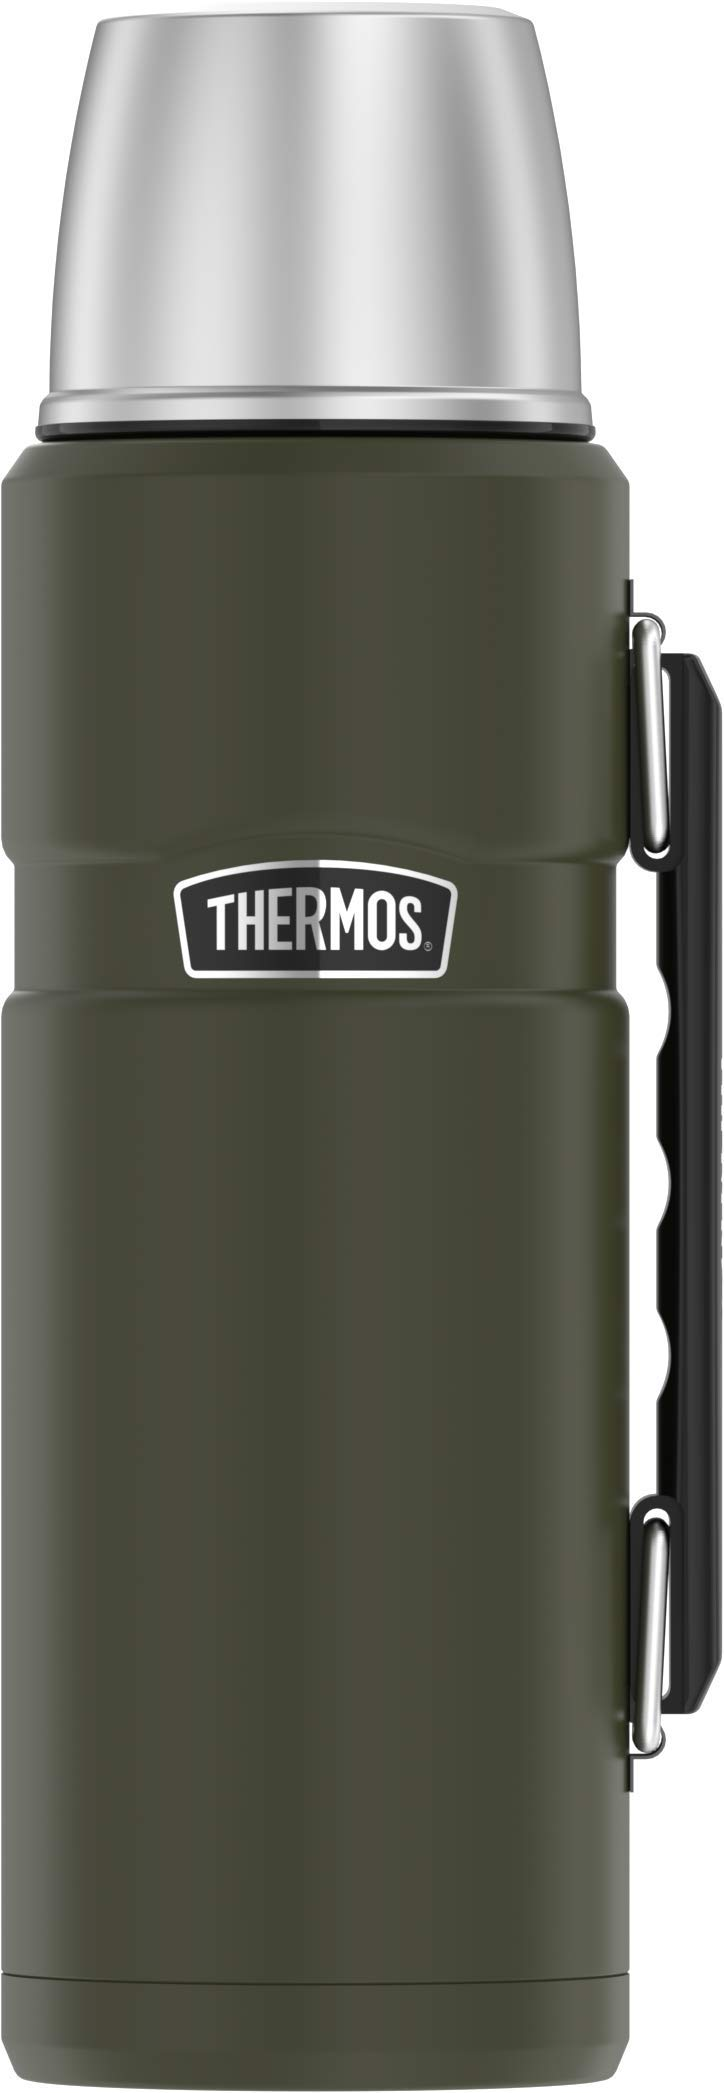 Thermos SK2010AGTRI4 King Beverage Bottle, 40 oz, Army Green